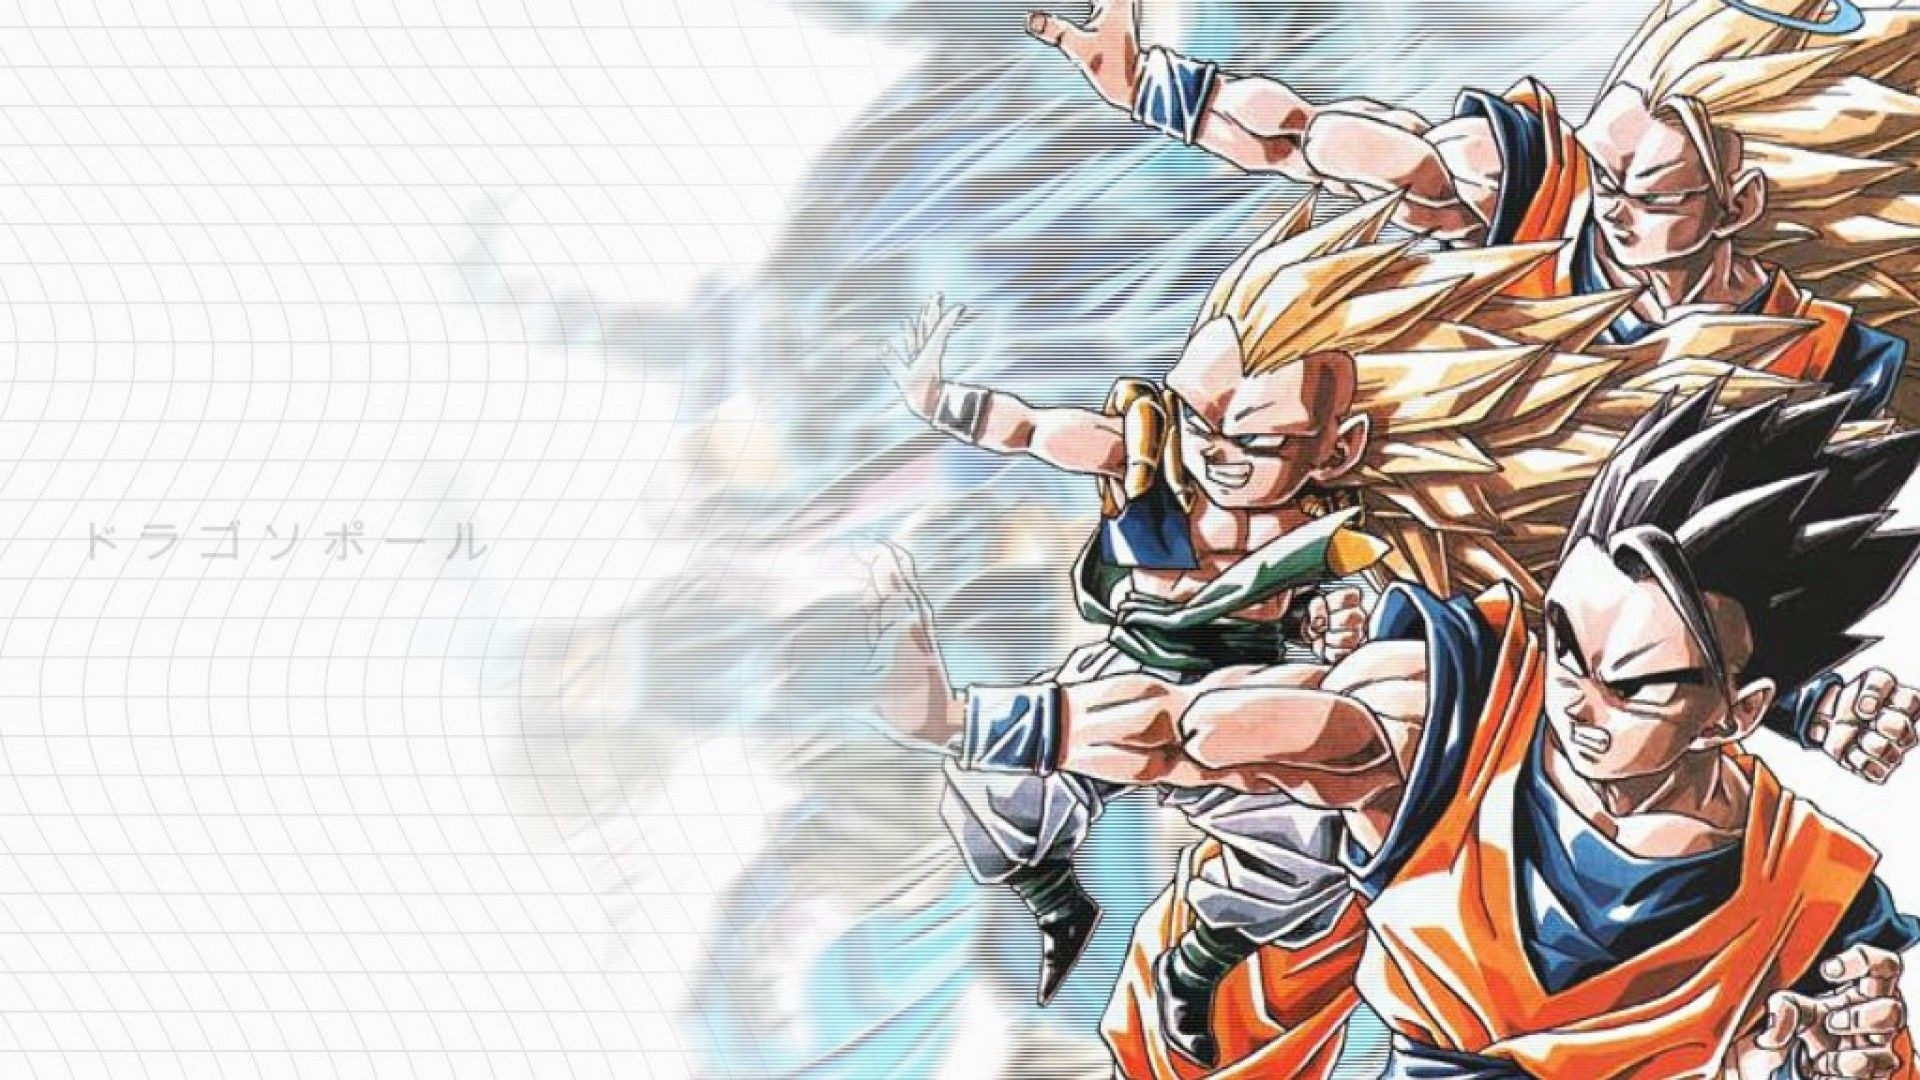 dragon ball z 1080p wallpaper (64+ images)